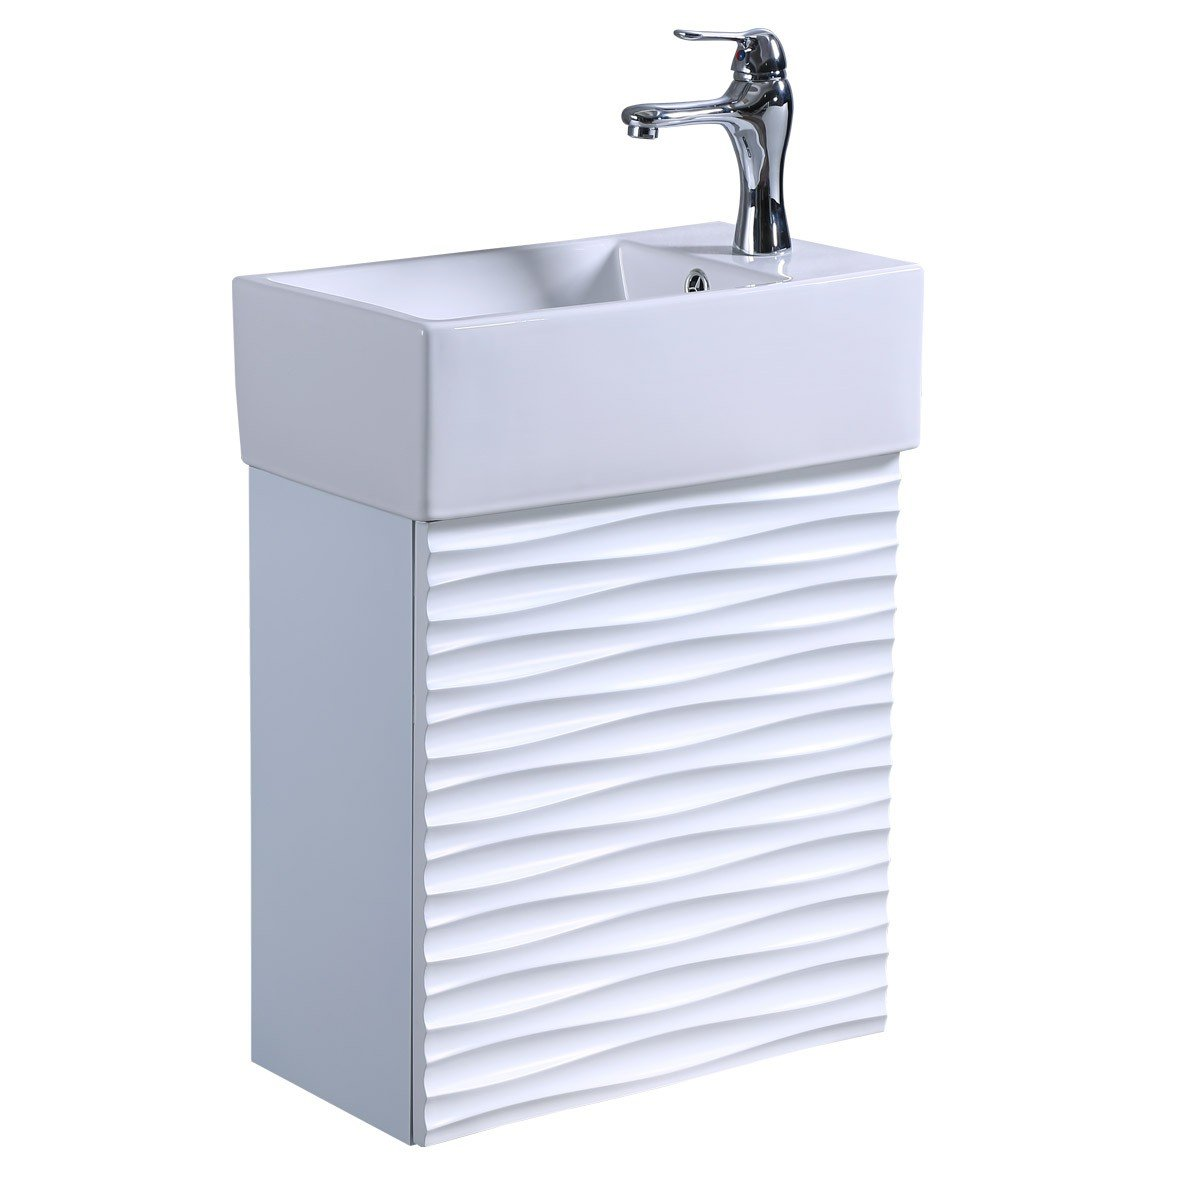 Wall Mount Bathroom Cabinet Vanity Sink White With Elegant Chrome Faucet And Drain Included Rippled Design